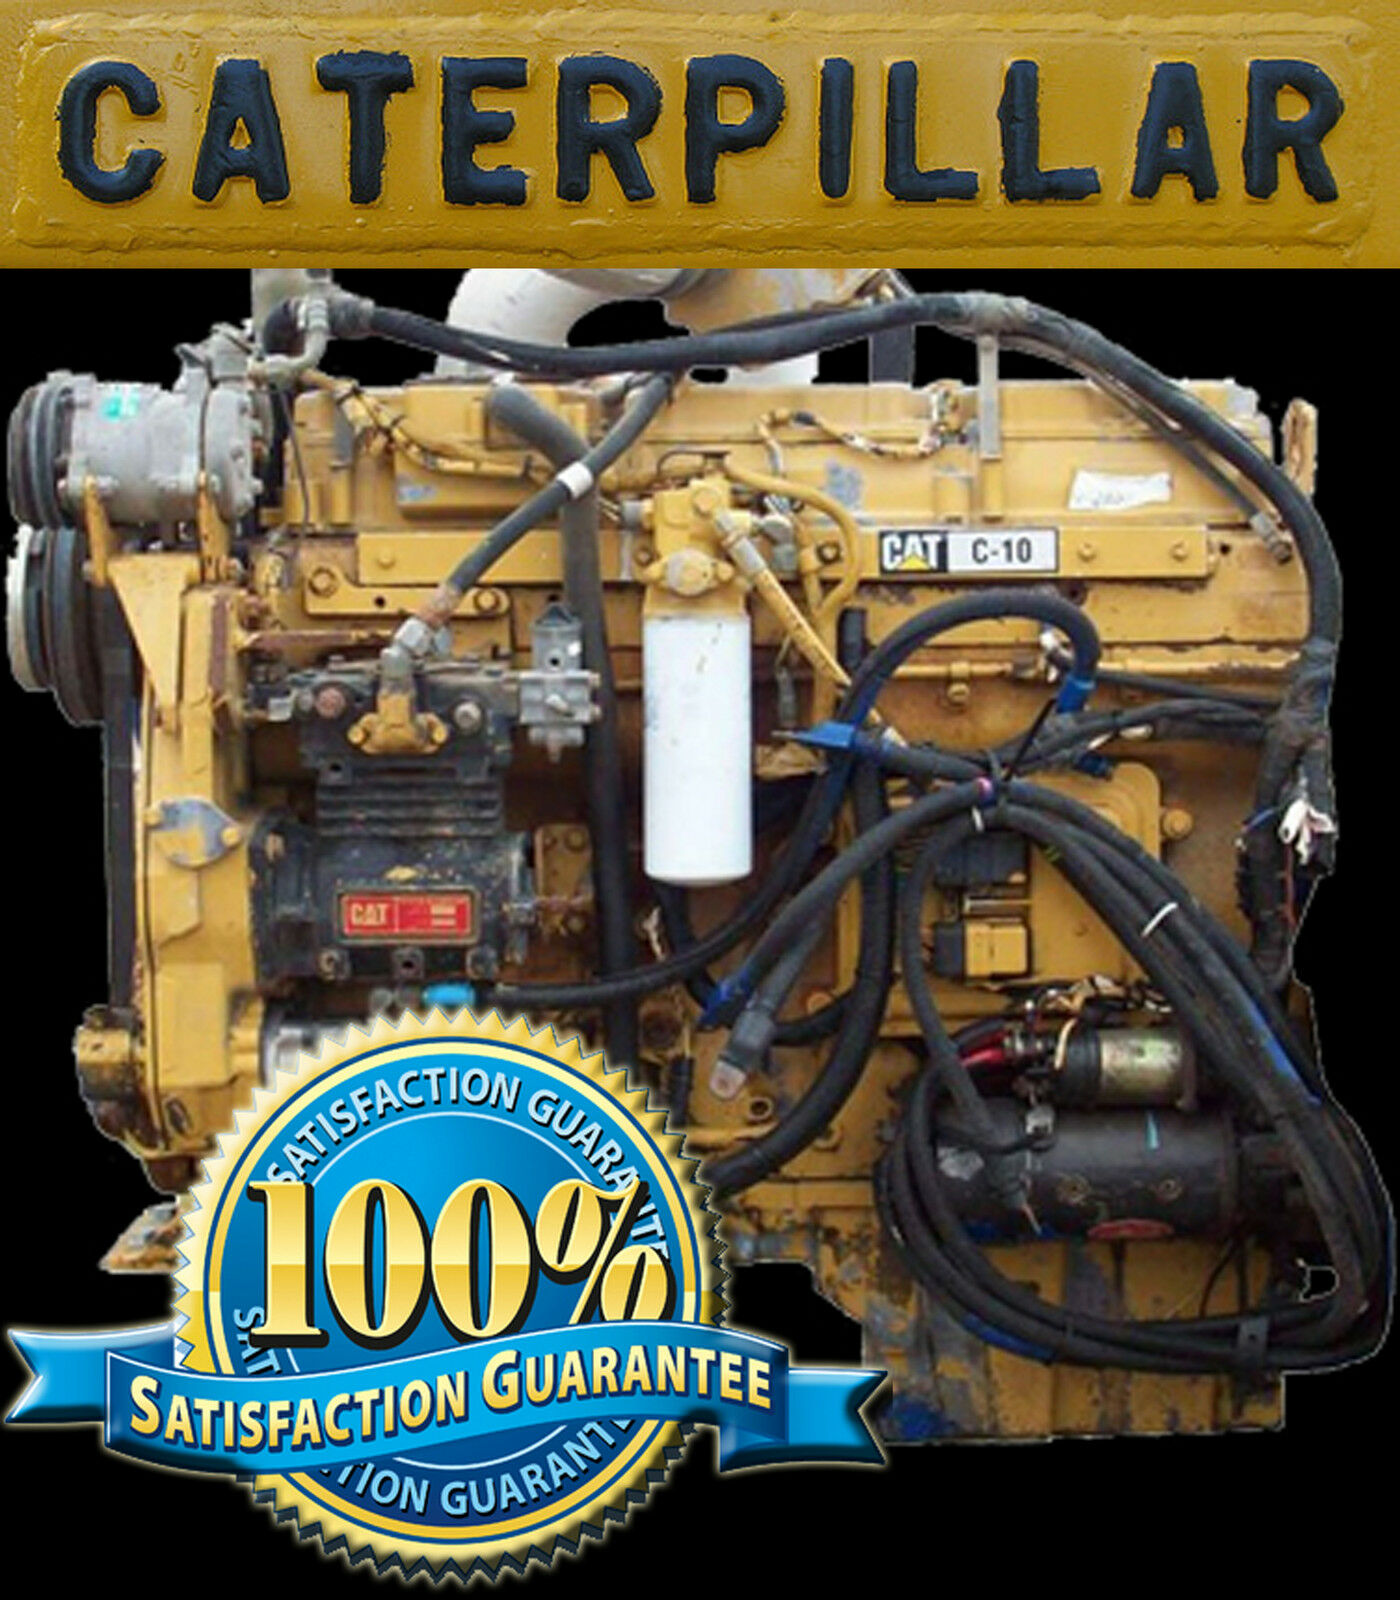 Caterpillar Cat C10 C12 On-Highway Engine Repair Service Maintenance Manual  1 of 1Only 2 available ...